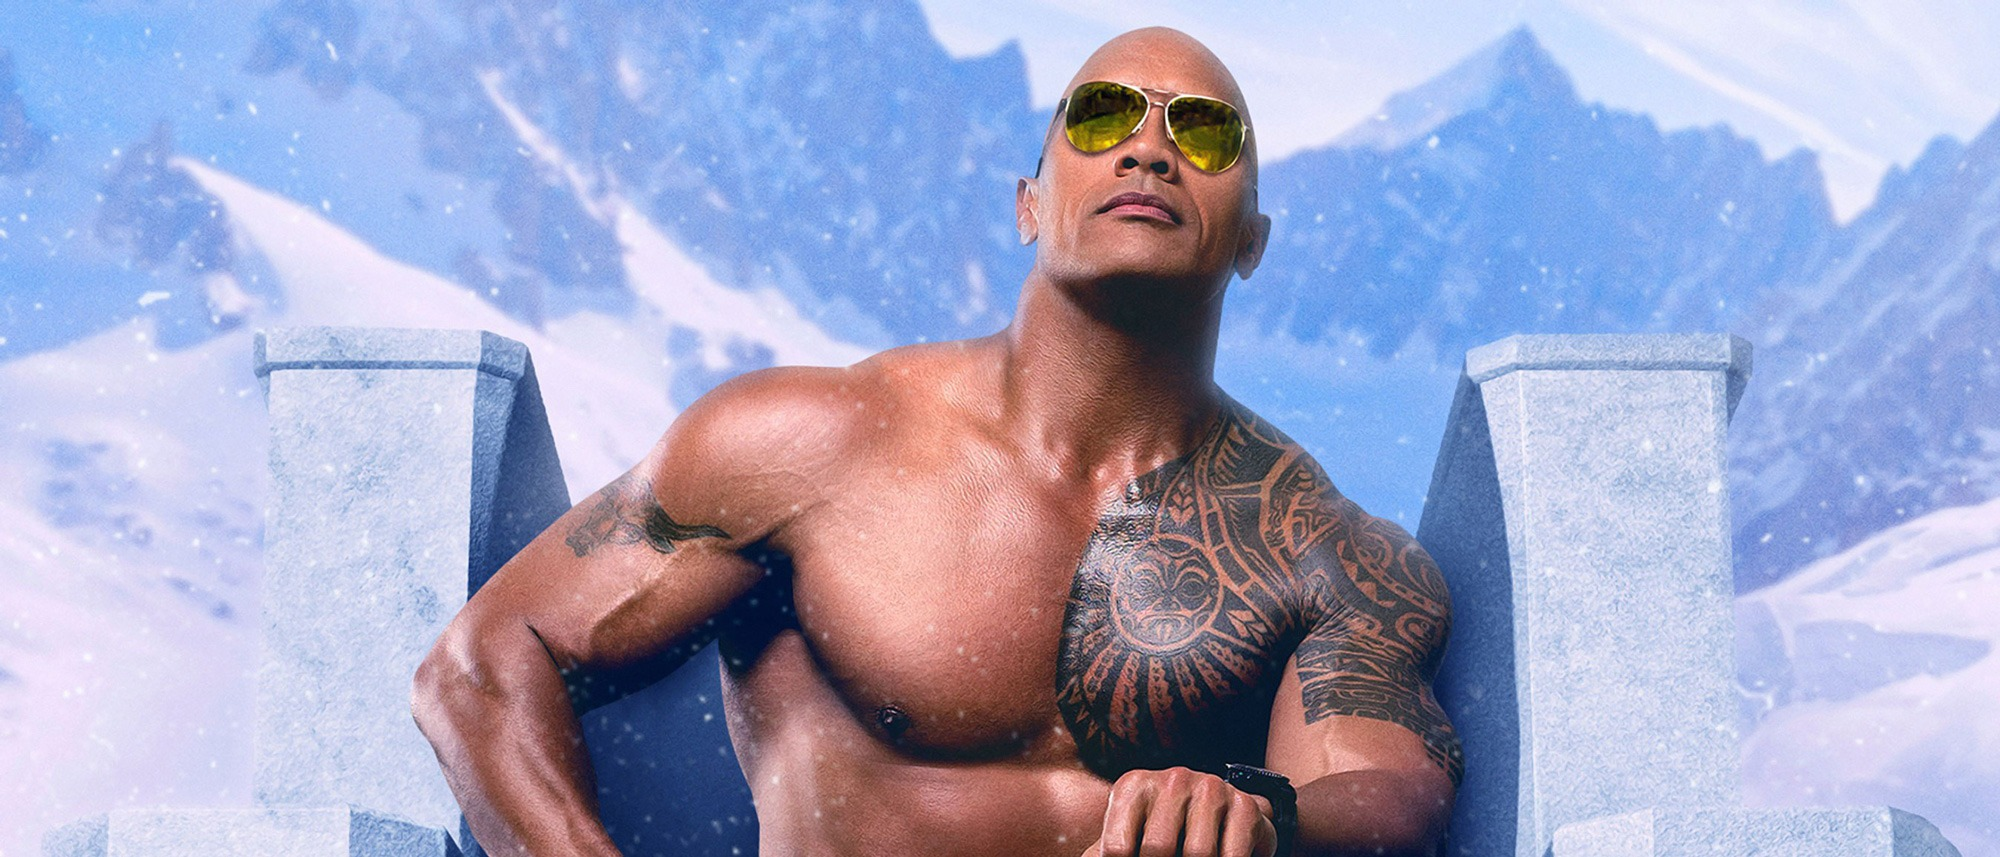 Dwayne The Rock Johnson will never be cast as a romantic lead, and here's why